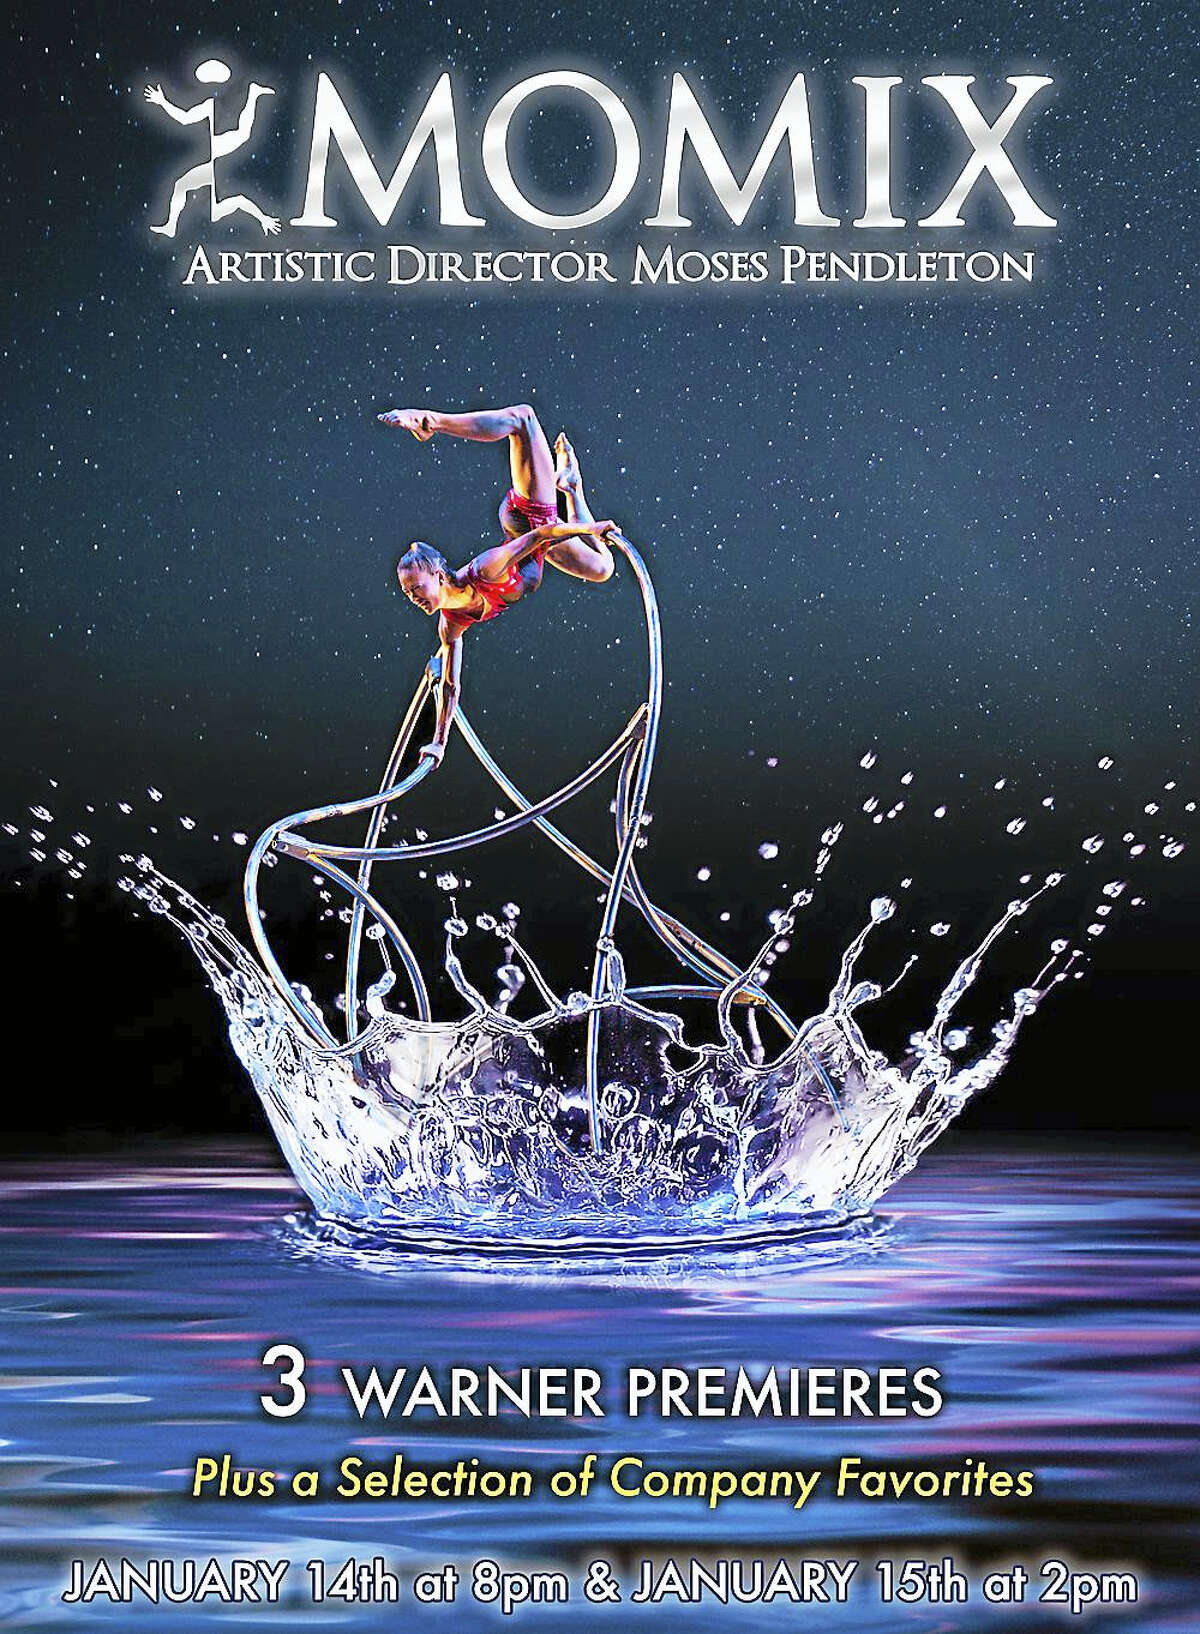 MOMIX Poster Design by Crevisio MOMIX, the Washington-based dance company, is set to perform three premieres at the Warner Theatre on Jan. 14-15.